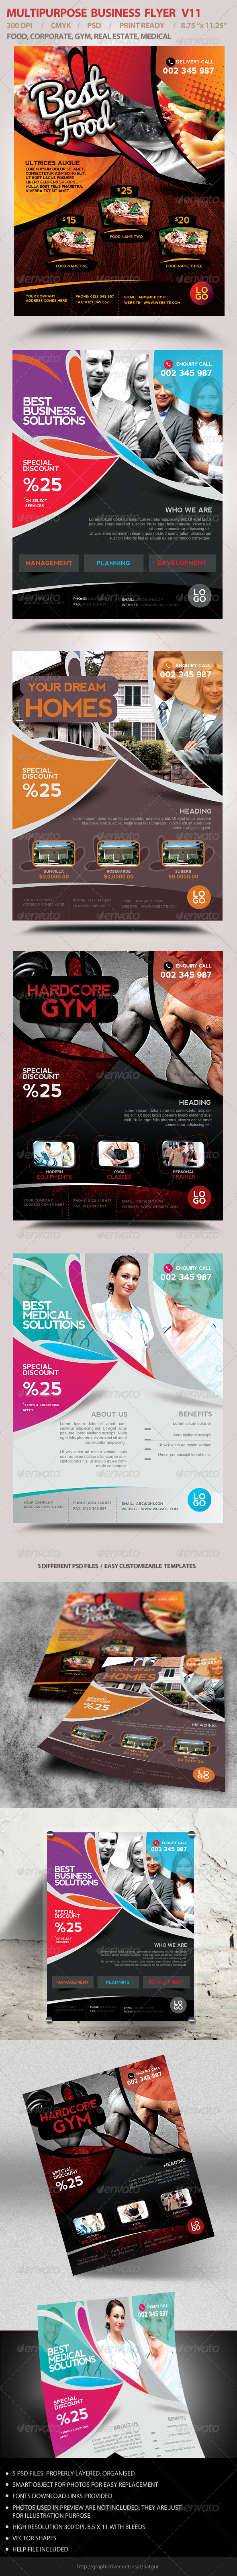 Multipurpose Business Flyer V11 - Flyers Print Templates